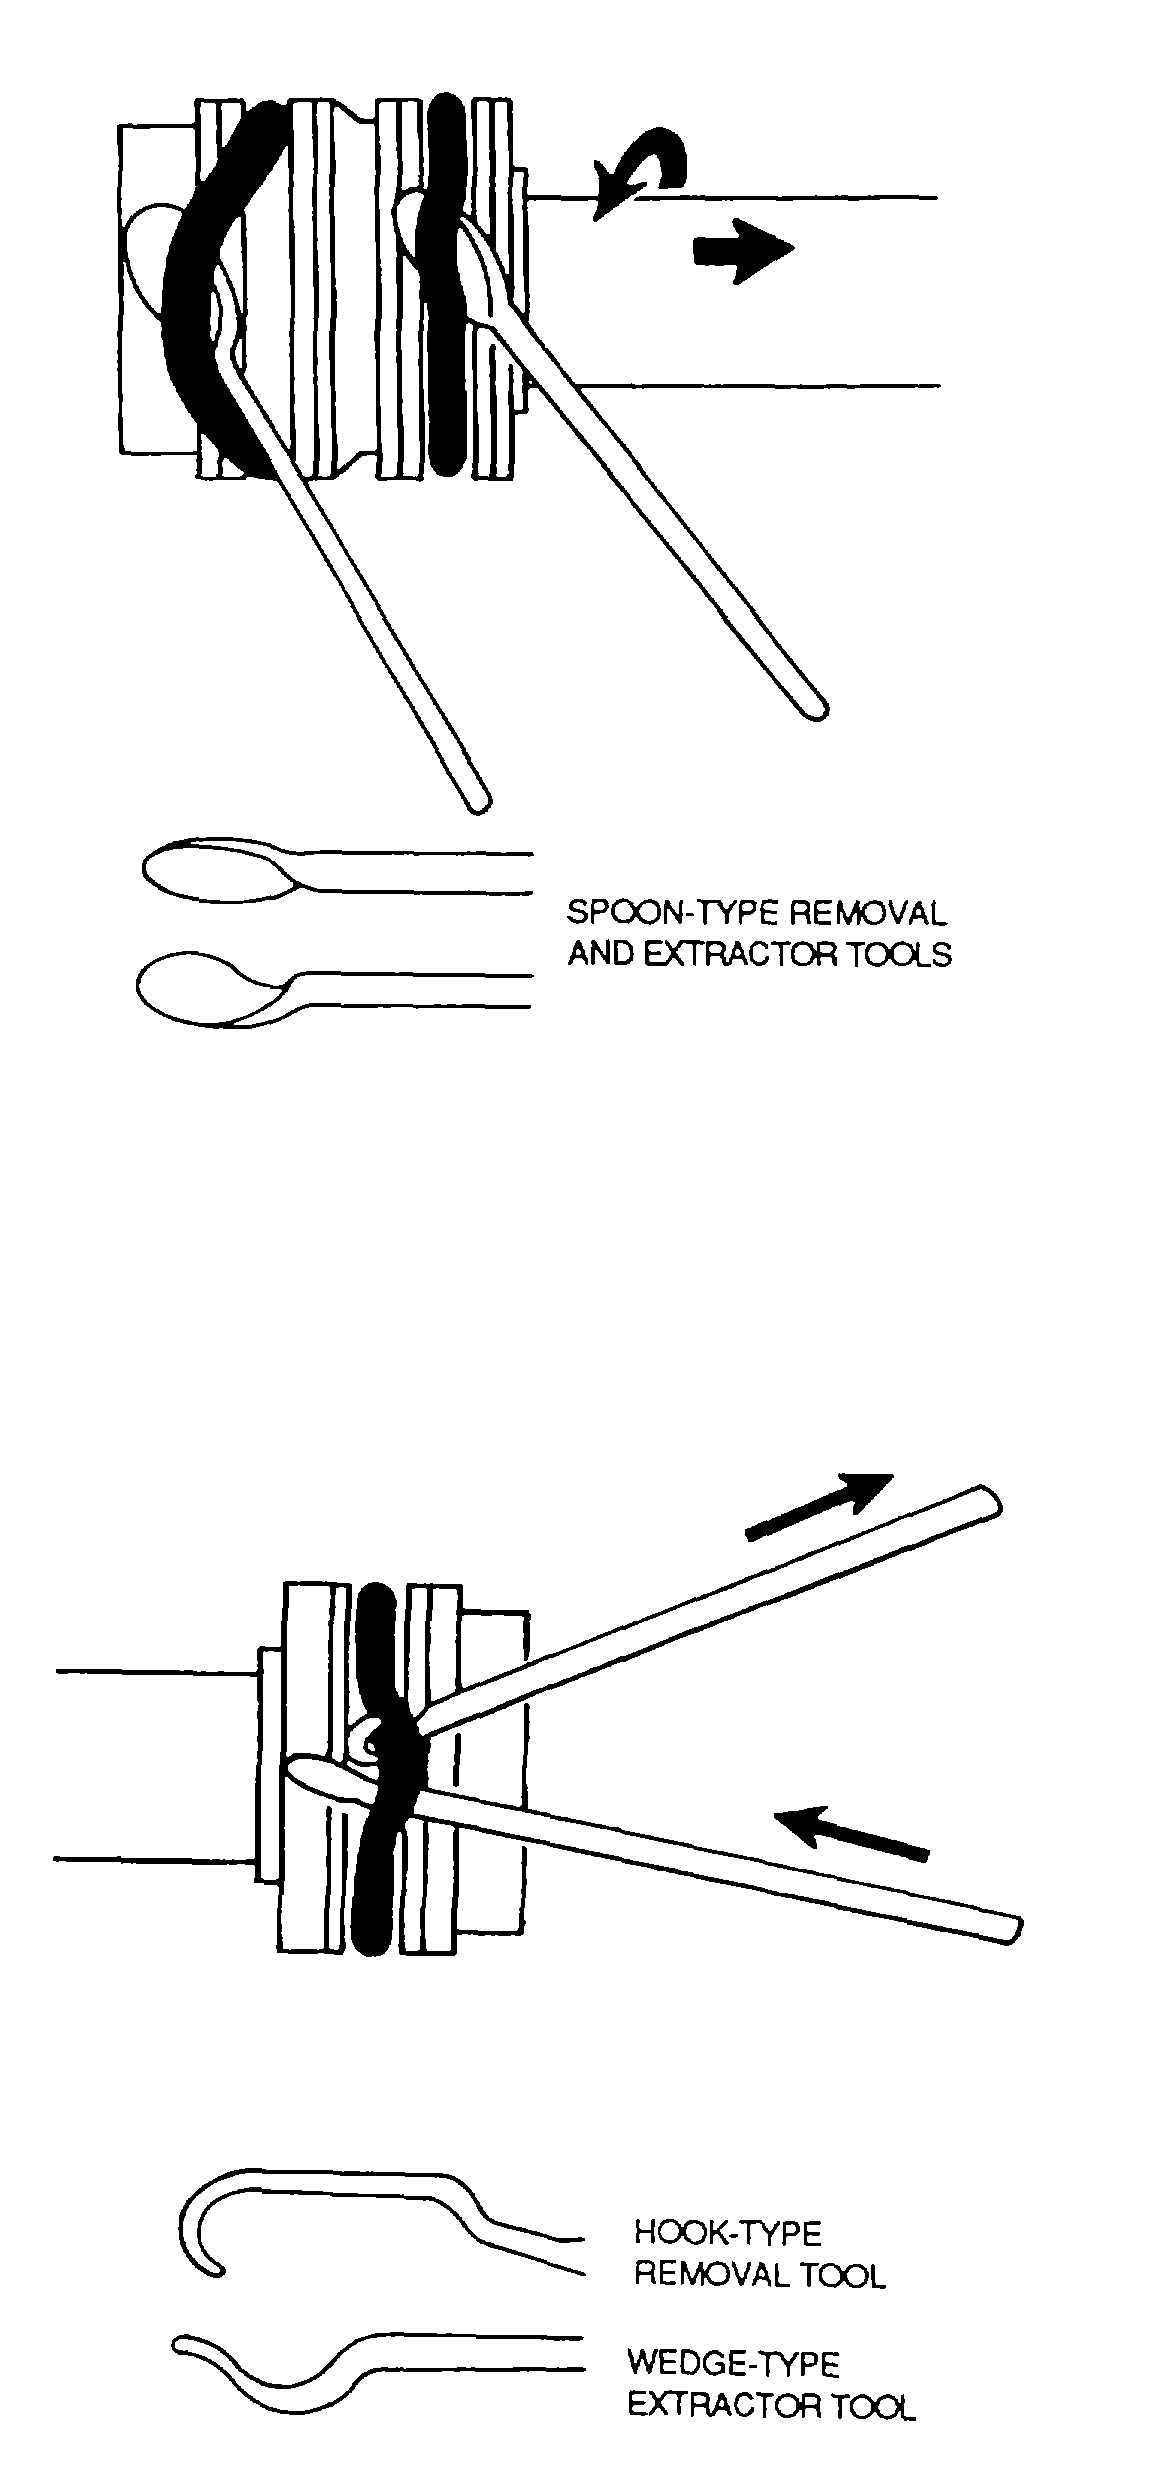 Figure 4-65. External O-Ring Removal (Spoon- Type Tools)